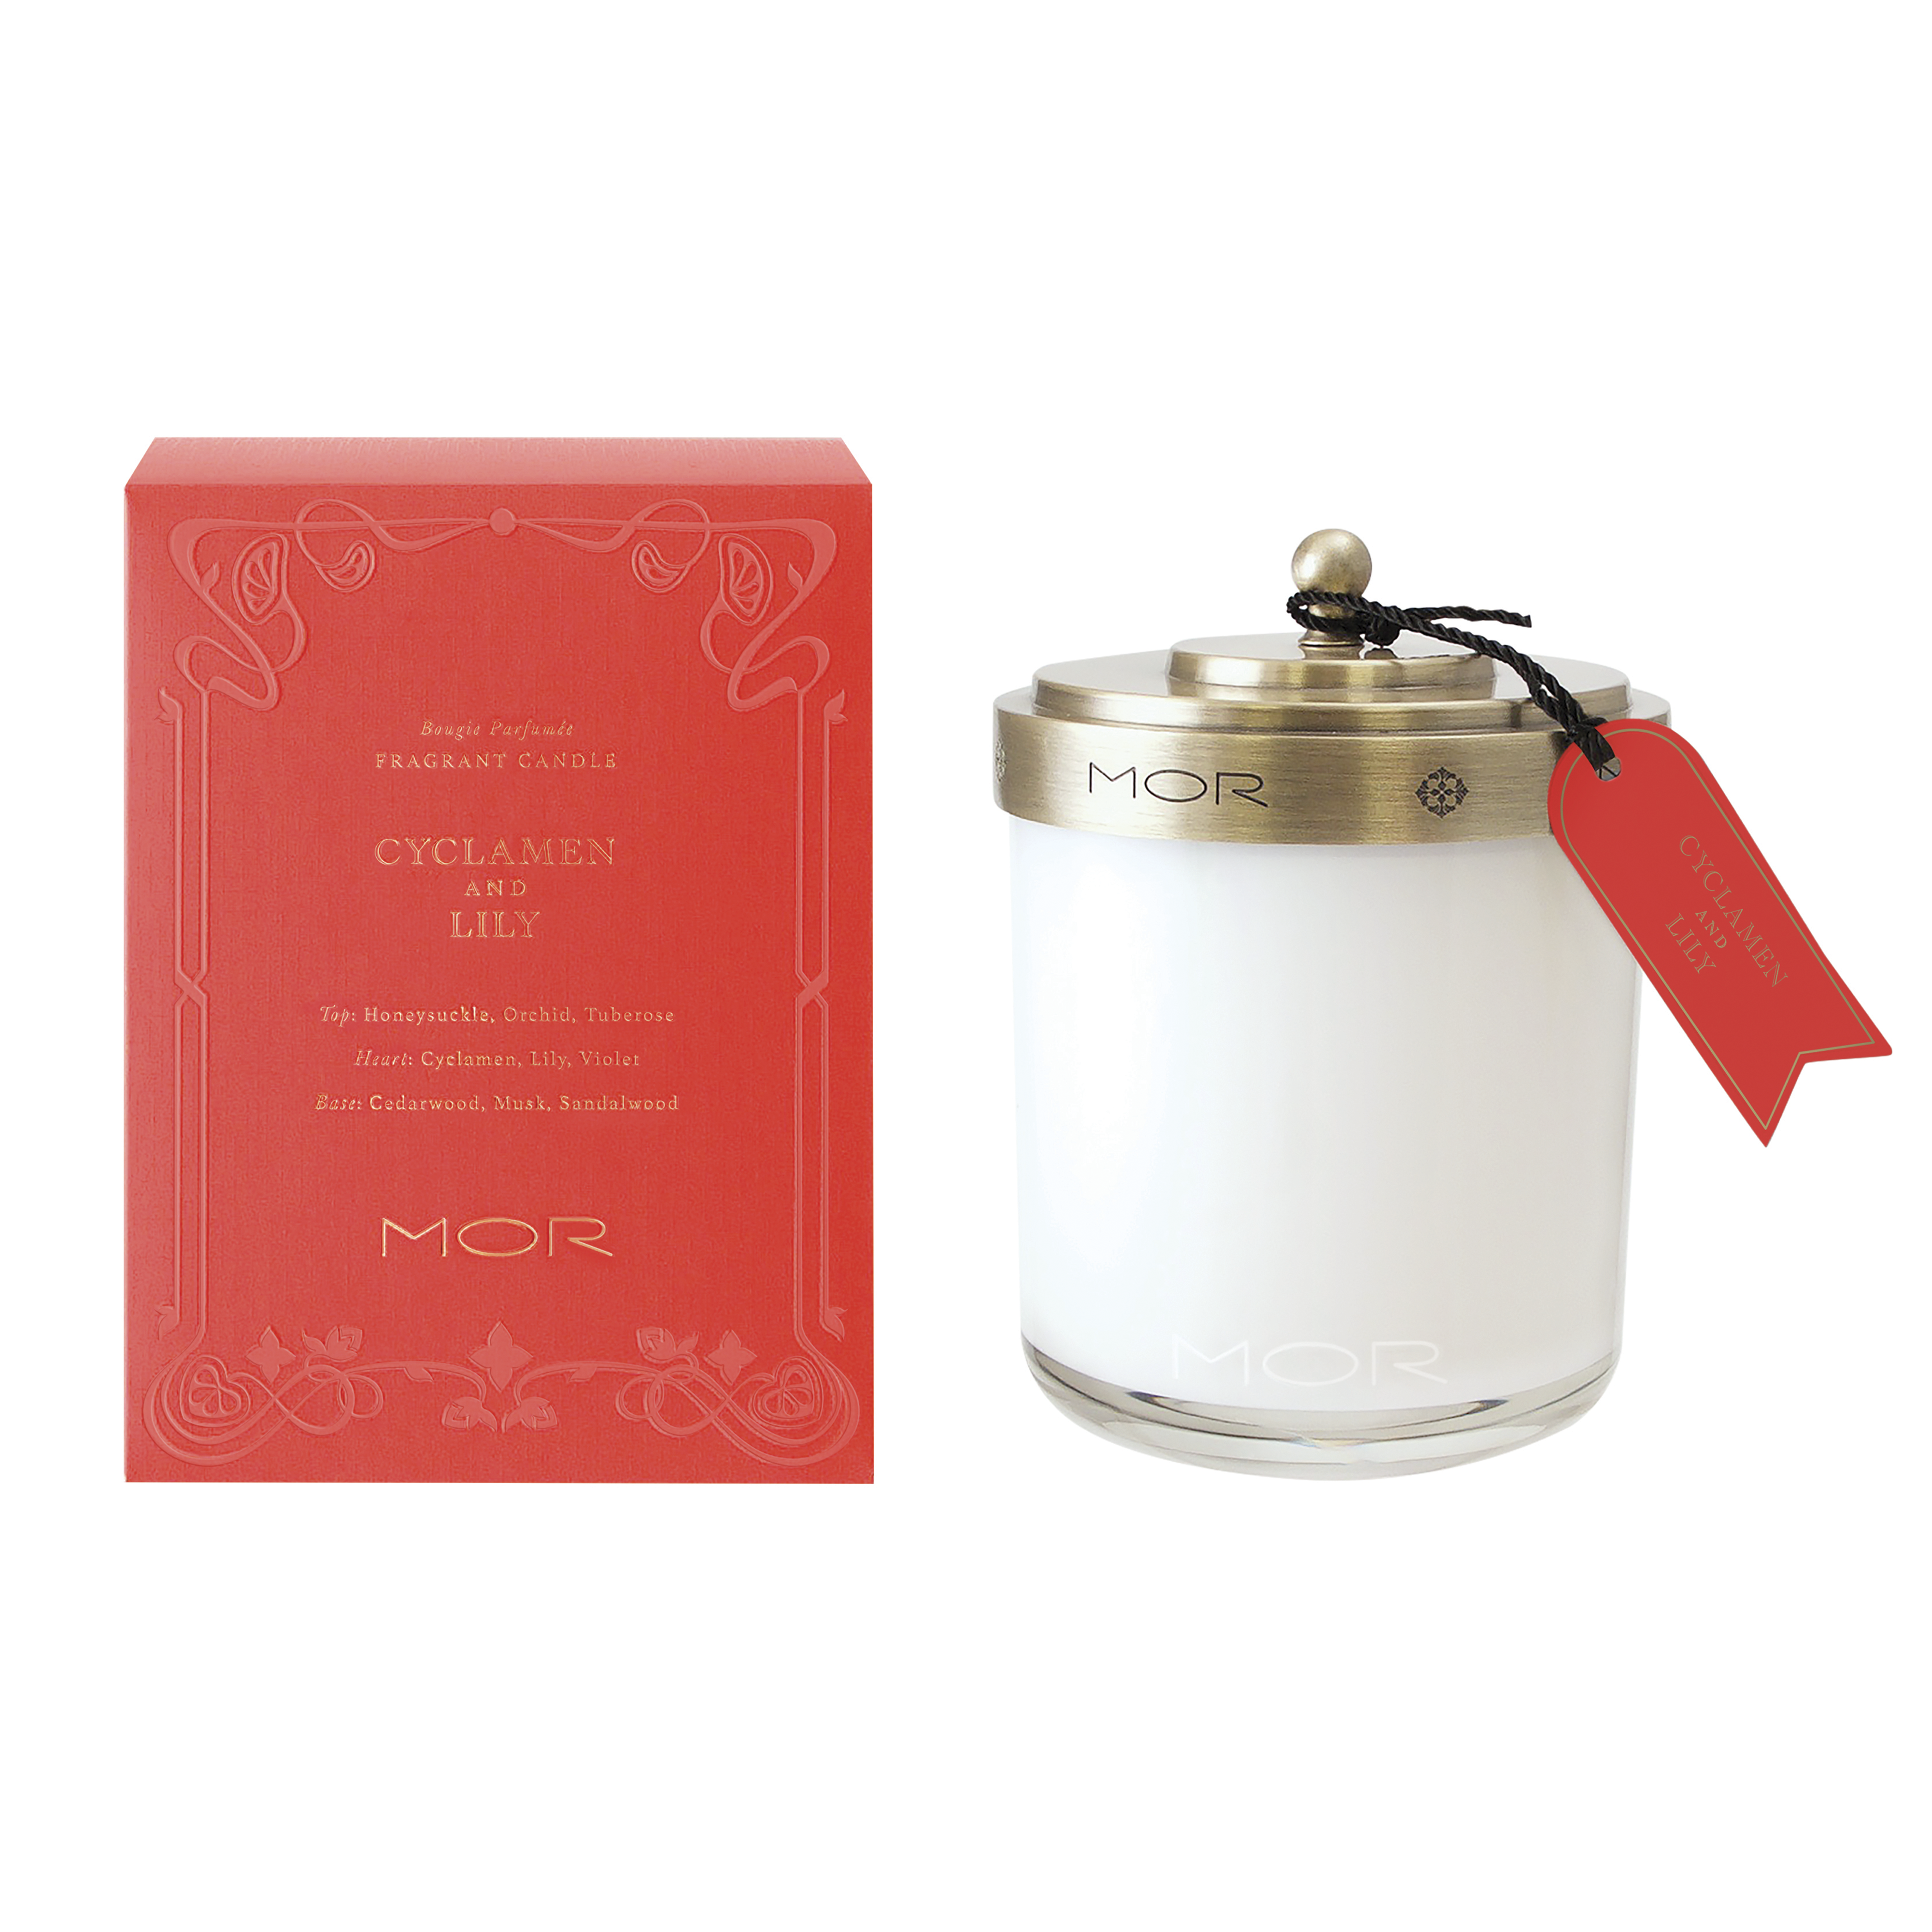 Library Cyklamen & Lily Scented Candle